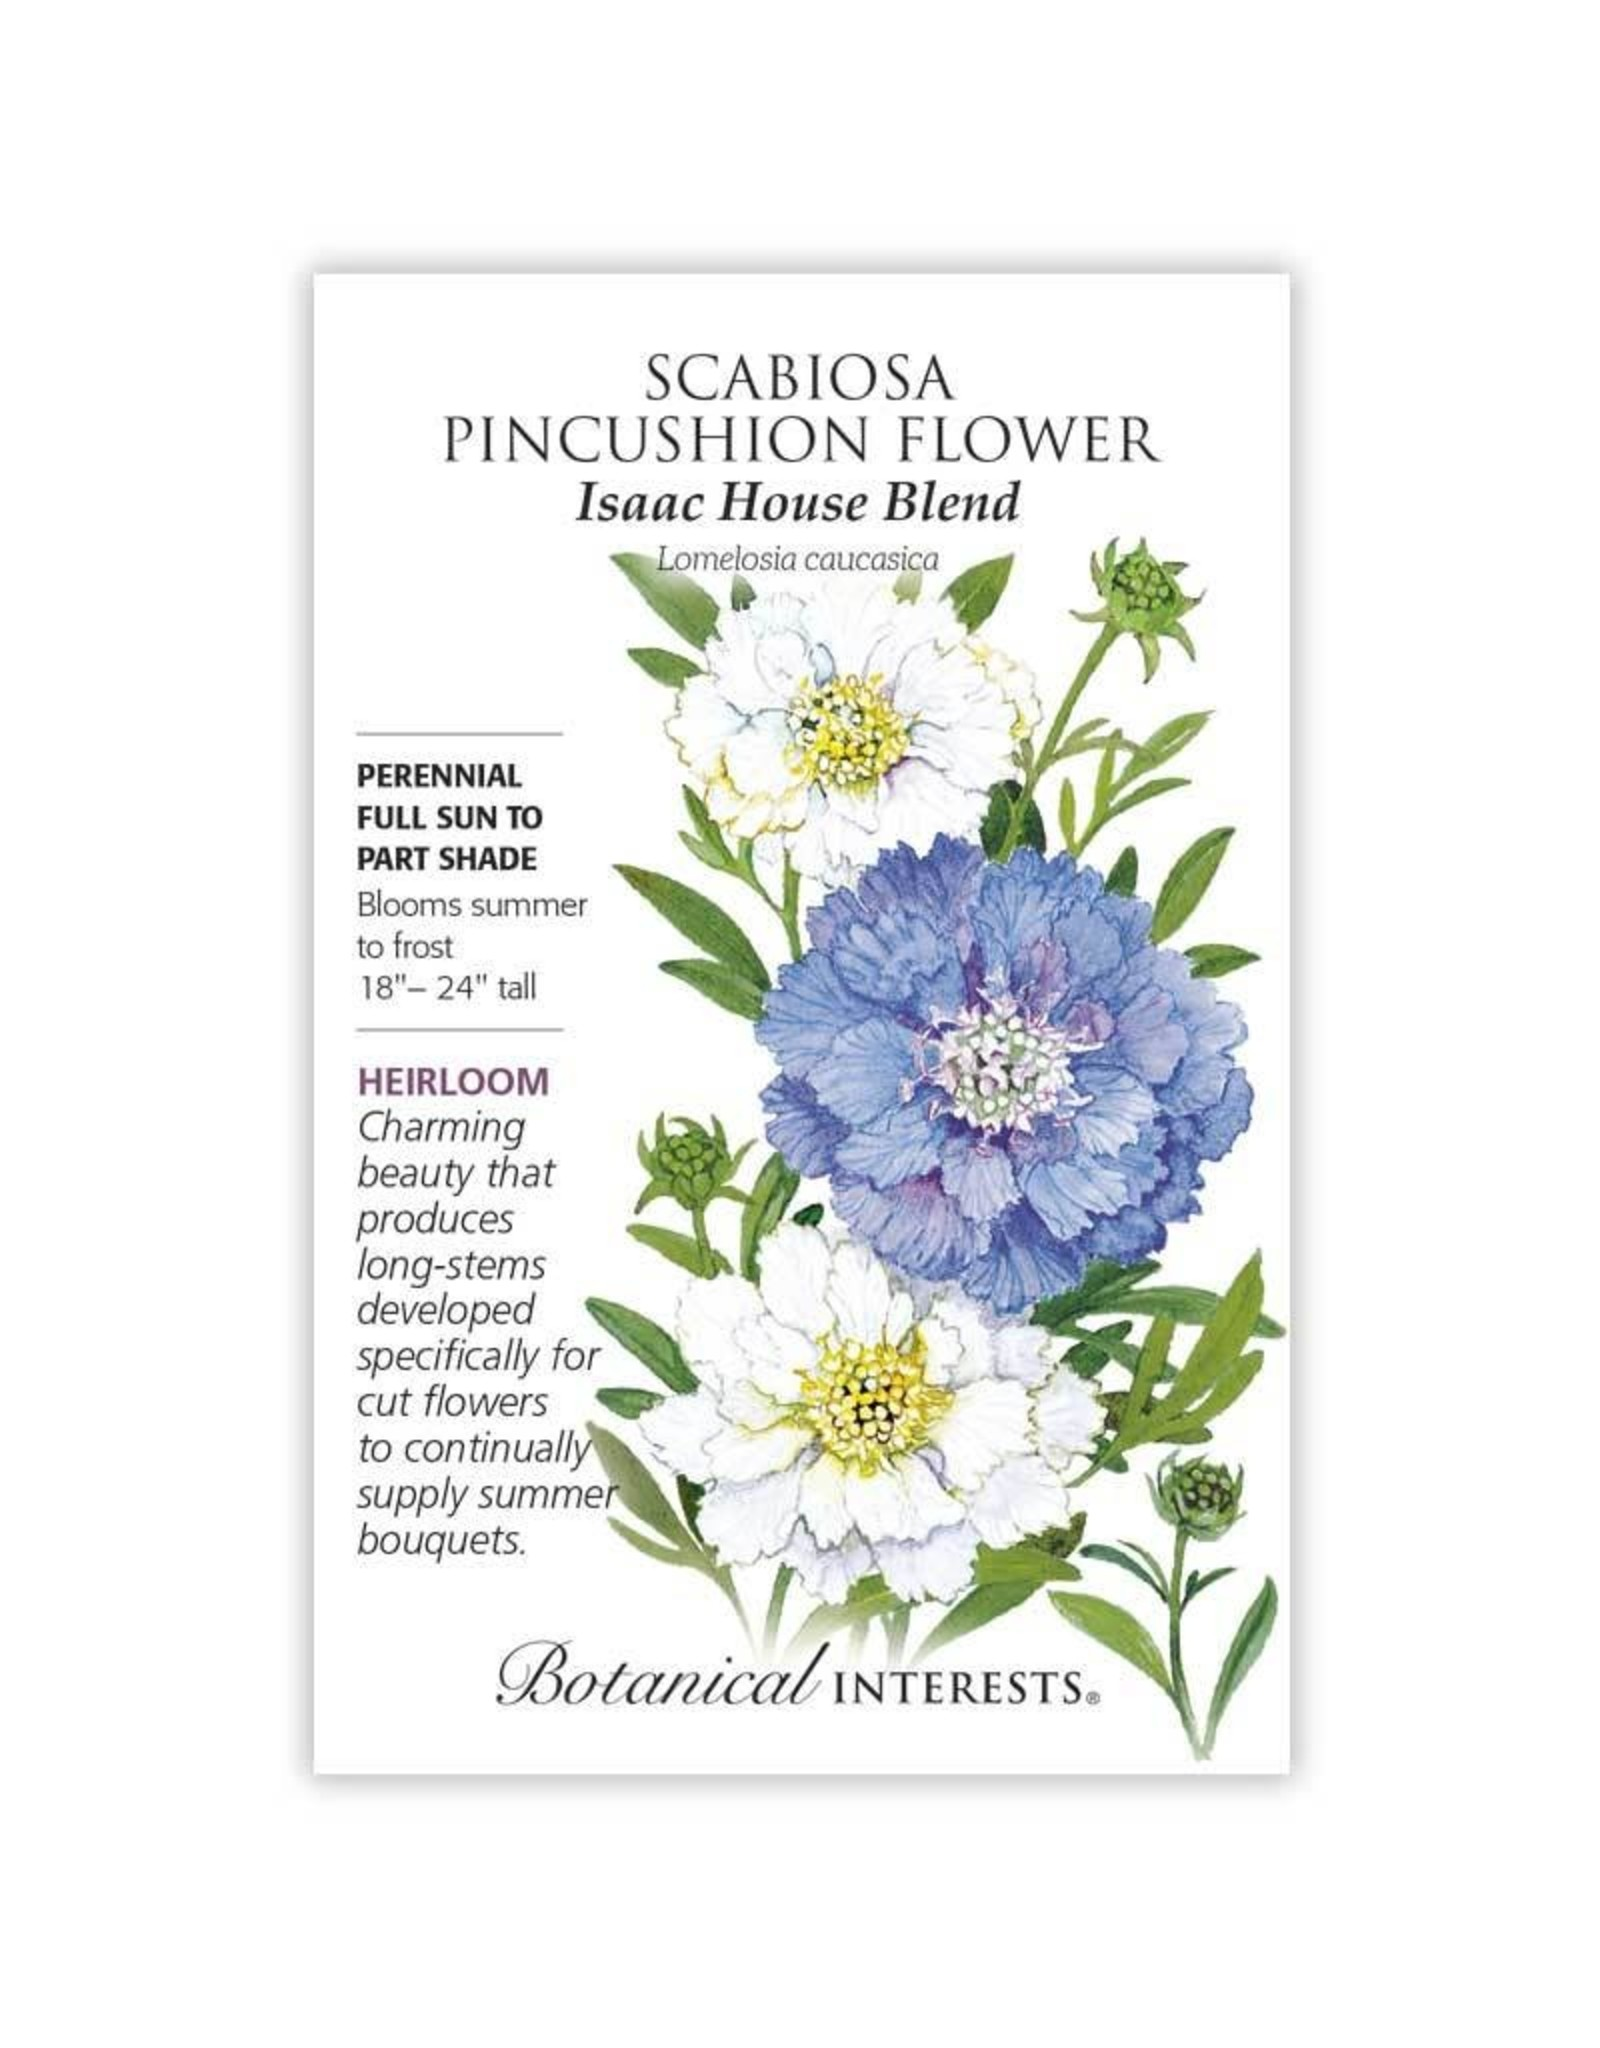 Seeds - Scabiosa, Pincushion Flower, Isaac House Blend